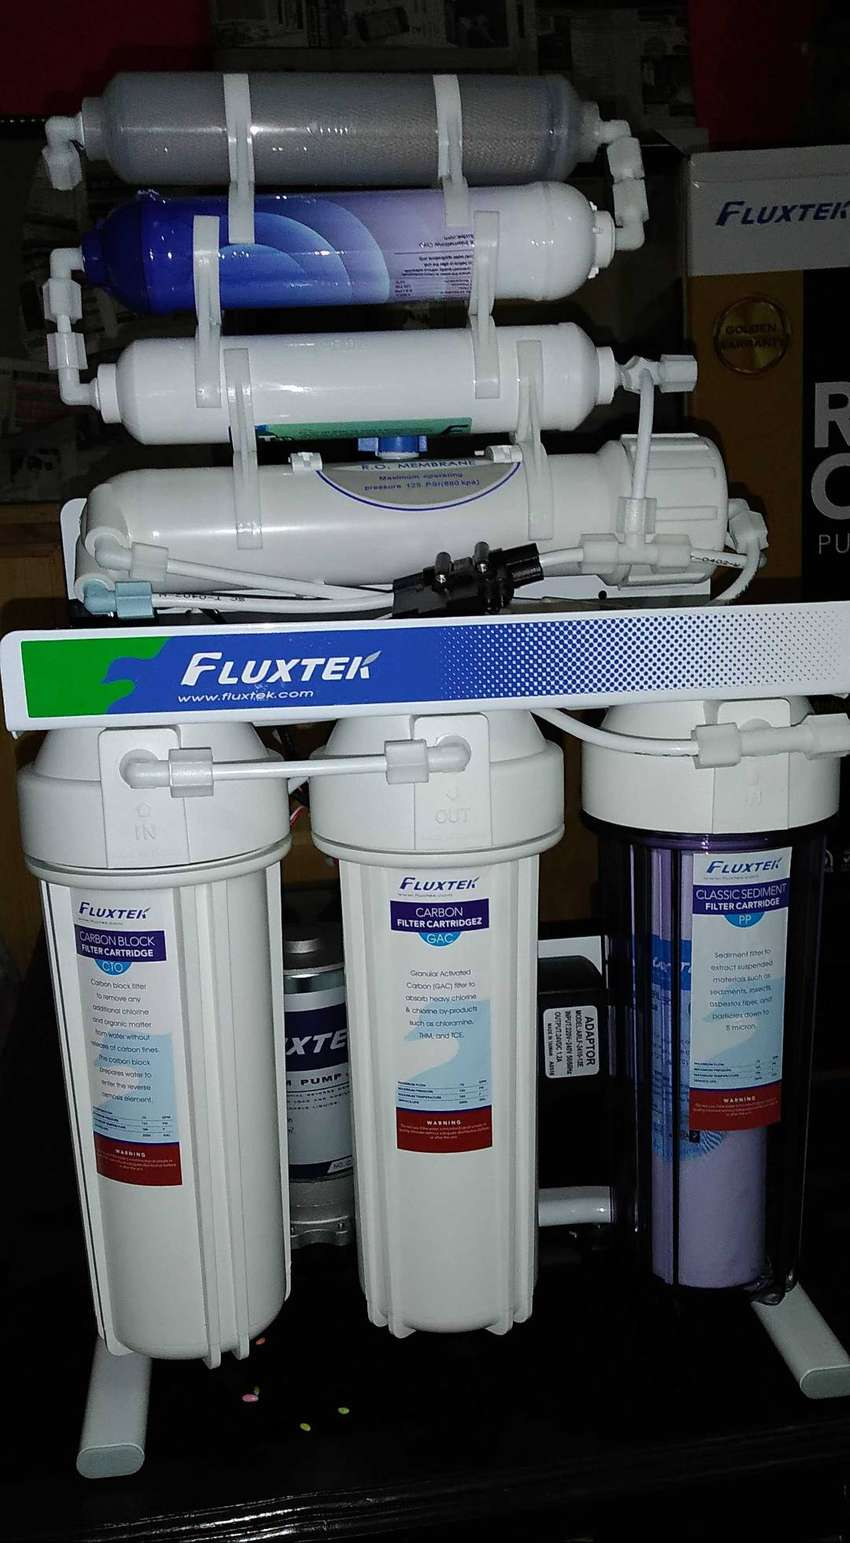 Ro Water Filter for Home or Office use, 7-Stage Taiwan 202021